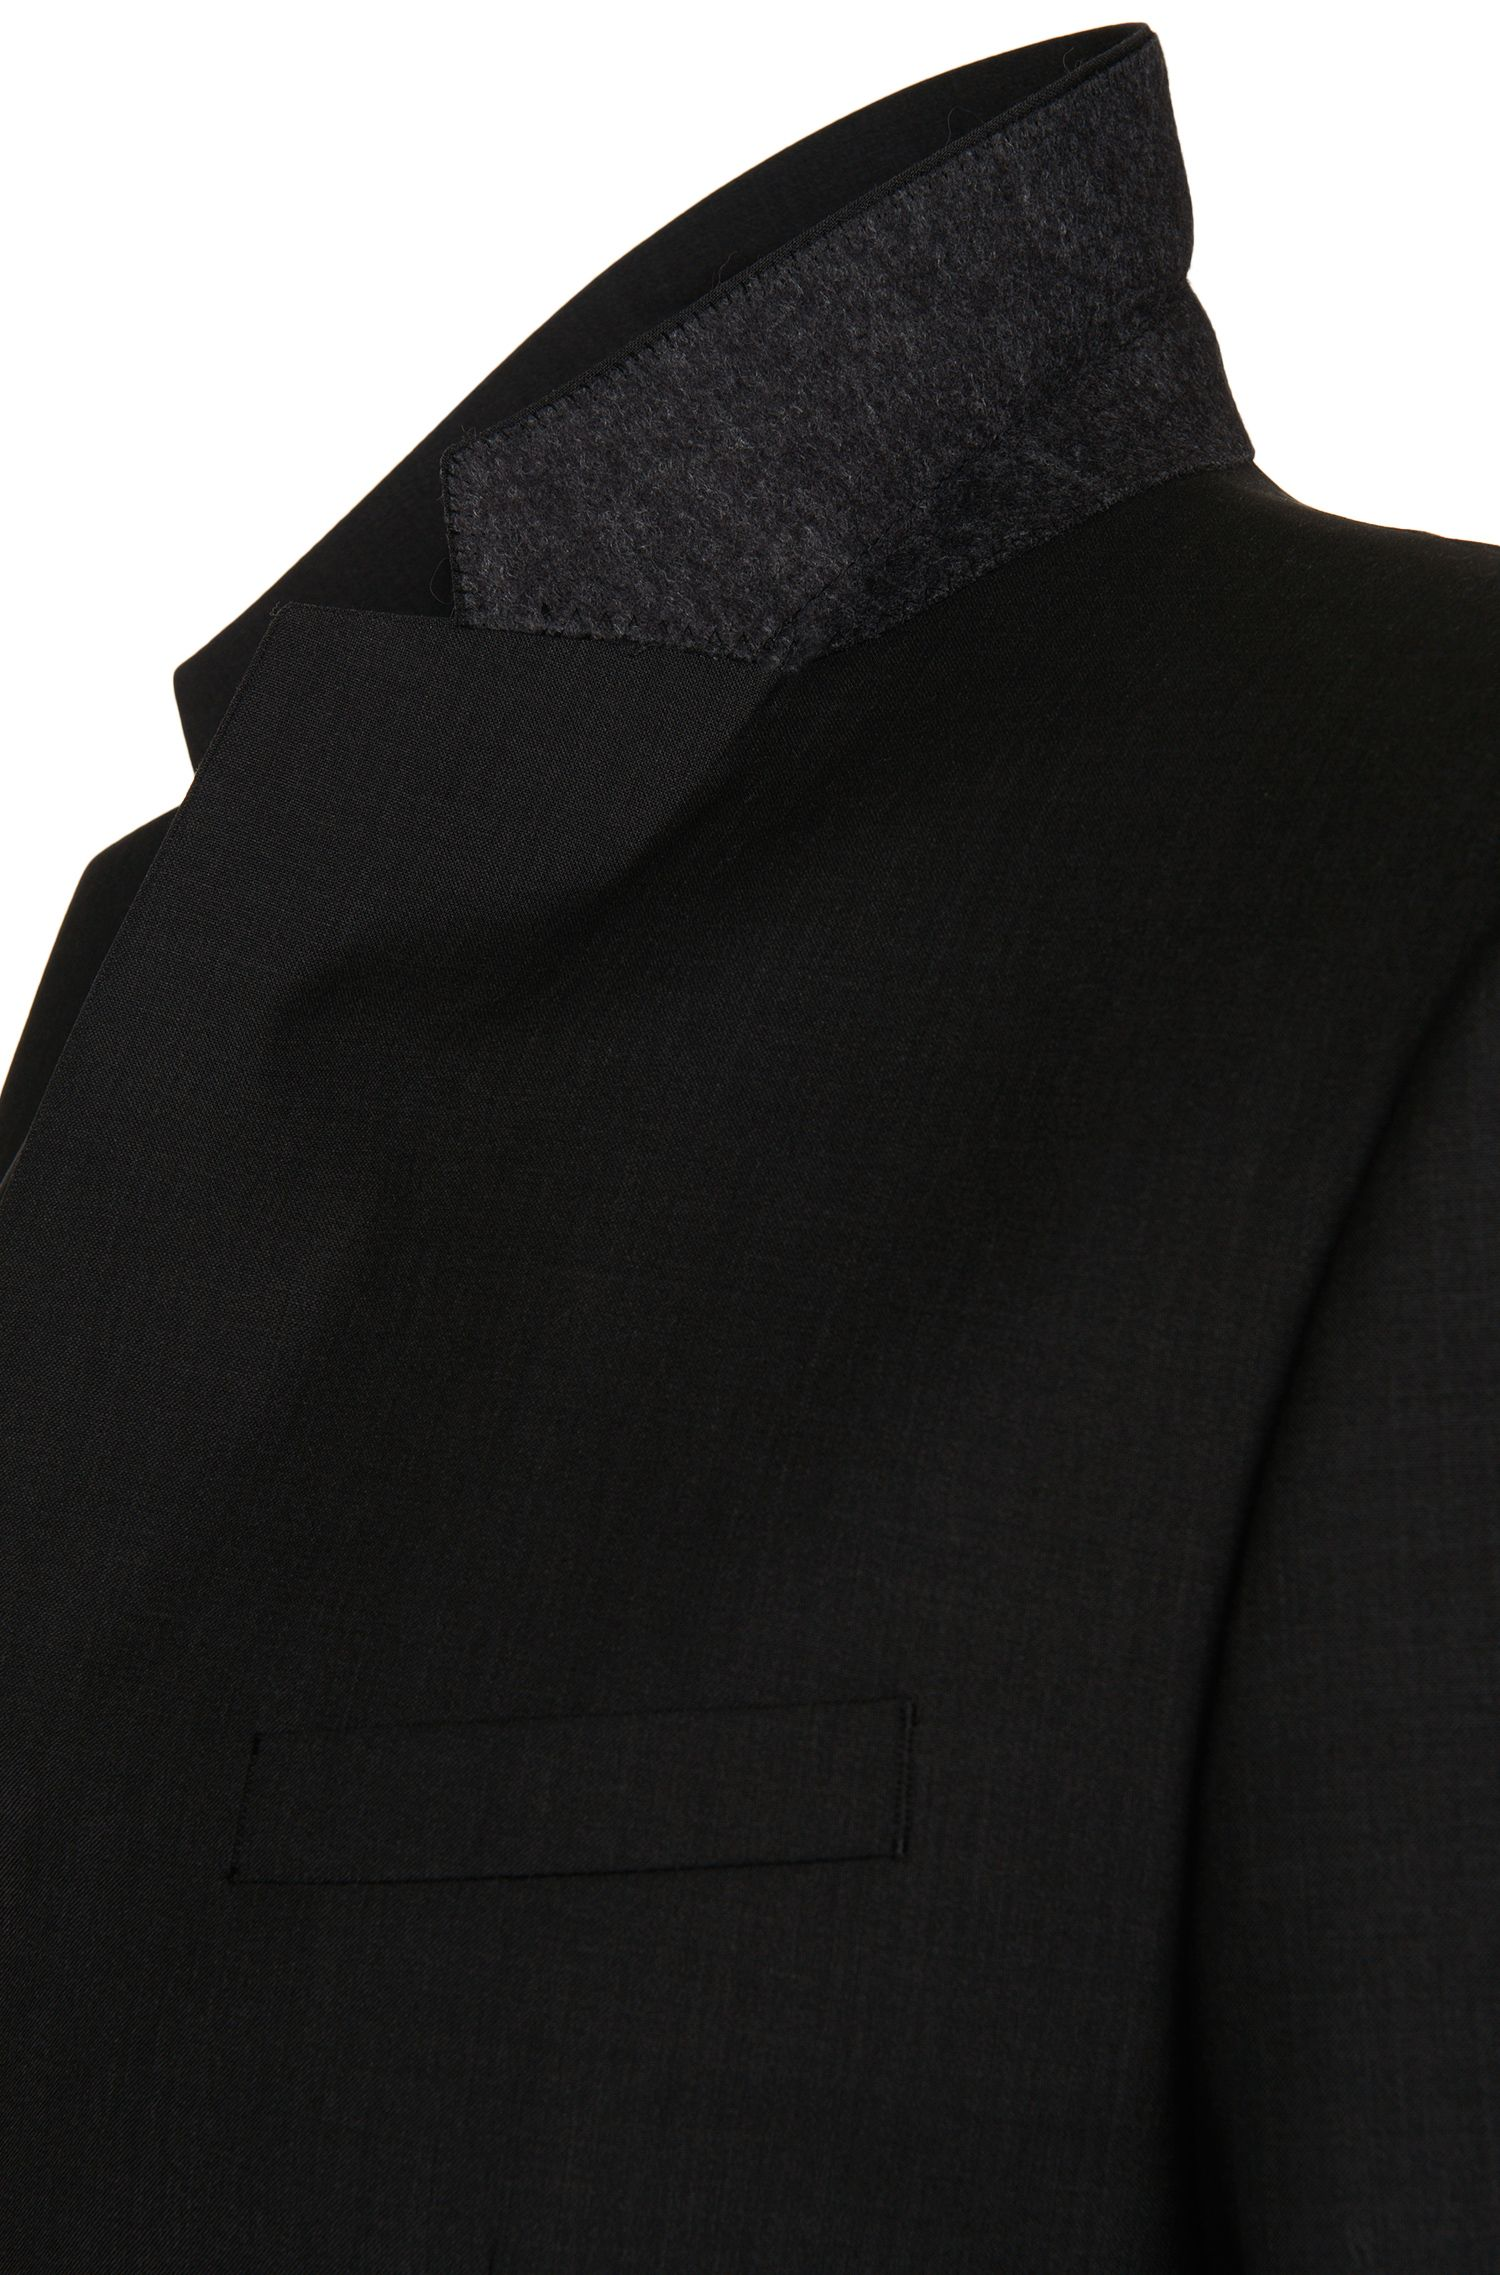 Virgin Wool Sport Coat, Slim Fit | Aerin S